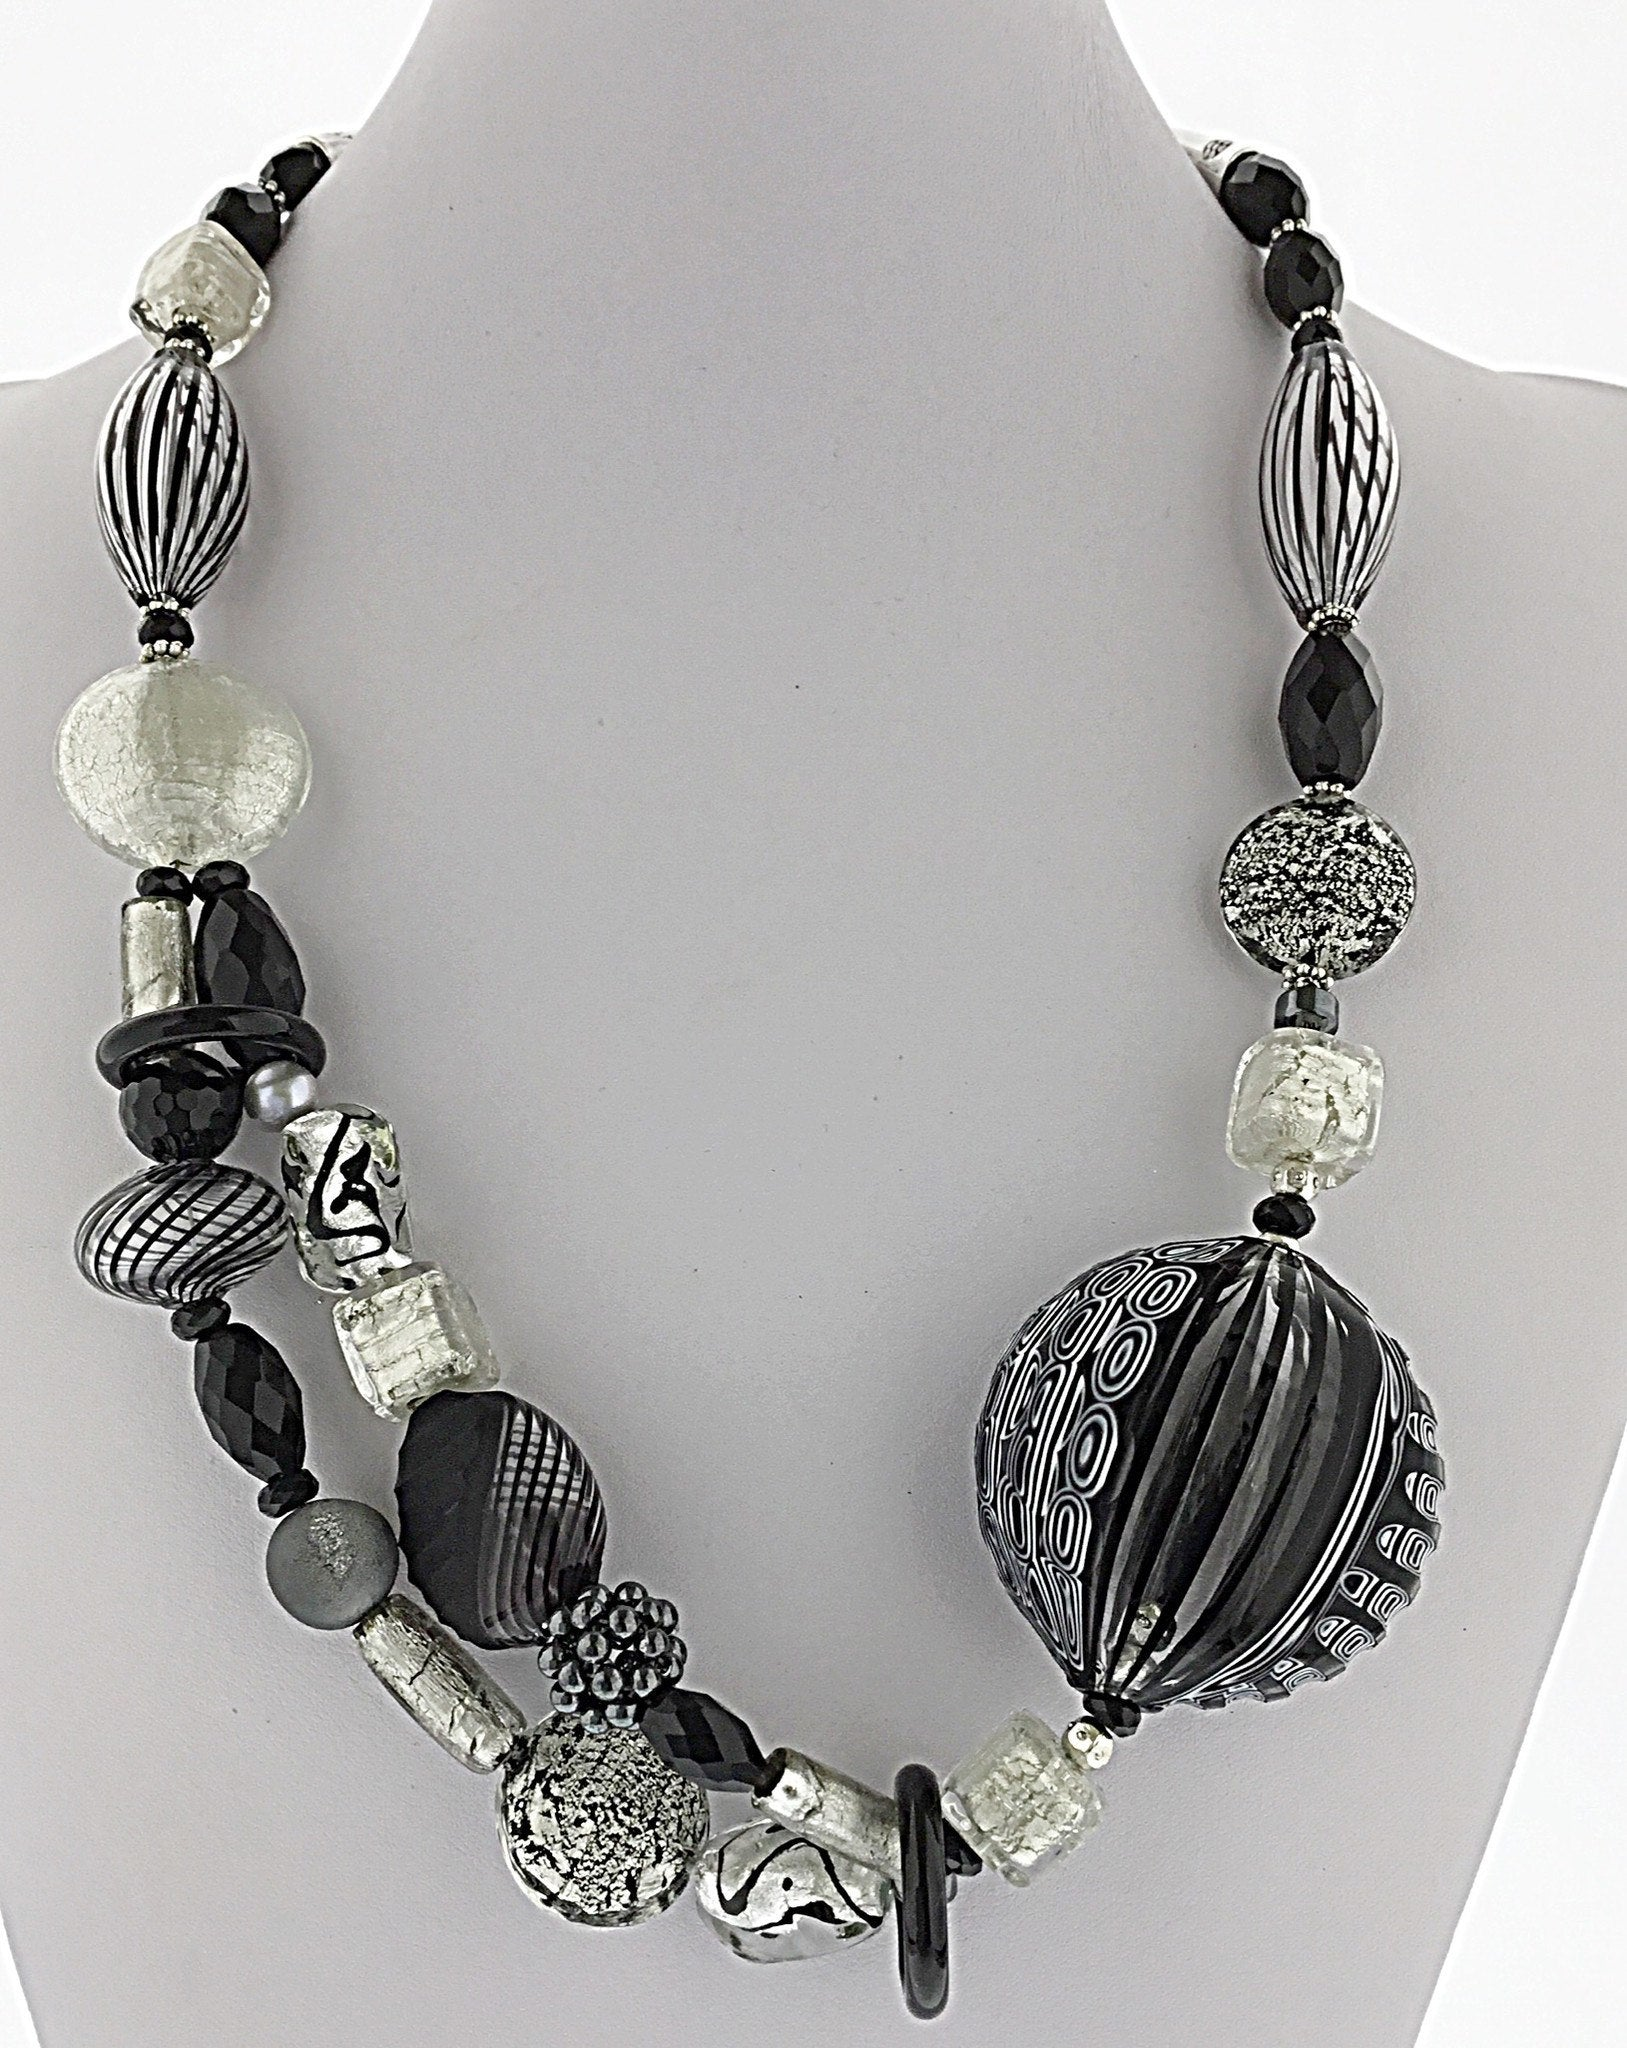 Murano Glass Necklace Black and White Stripes - Real Chic Boutique  - 2